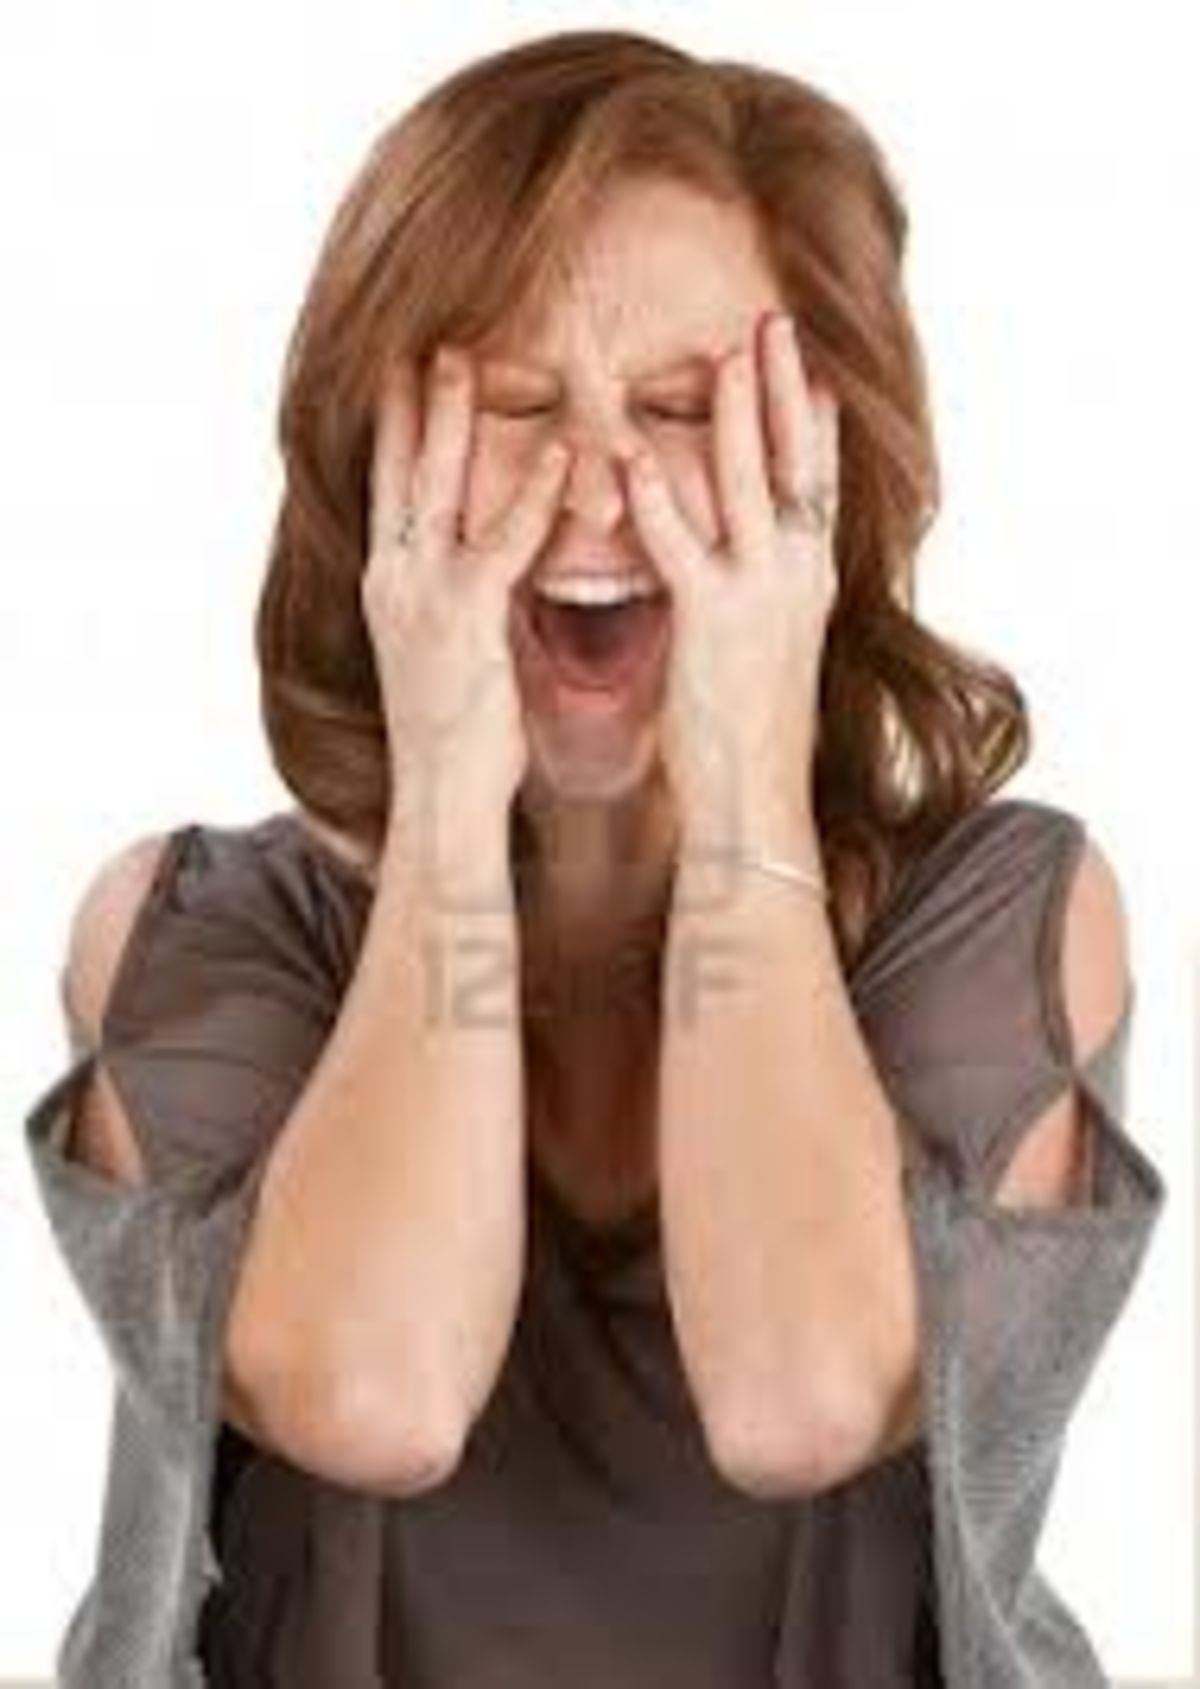 Facial Expressions, Anxiety, NLD'ers and others   Psychology